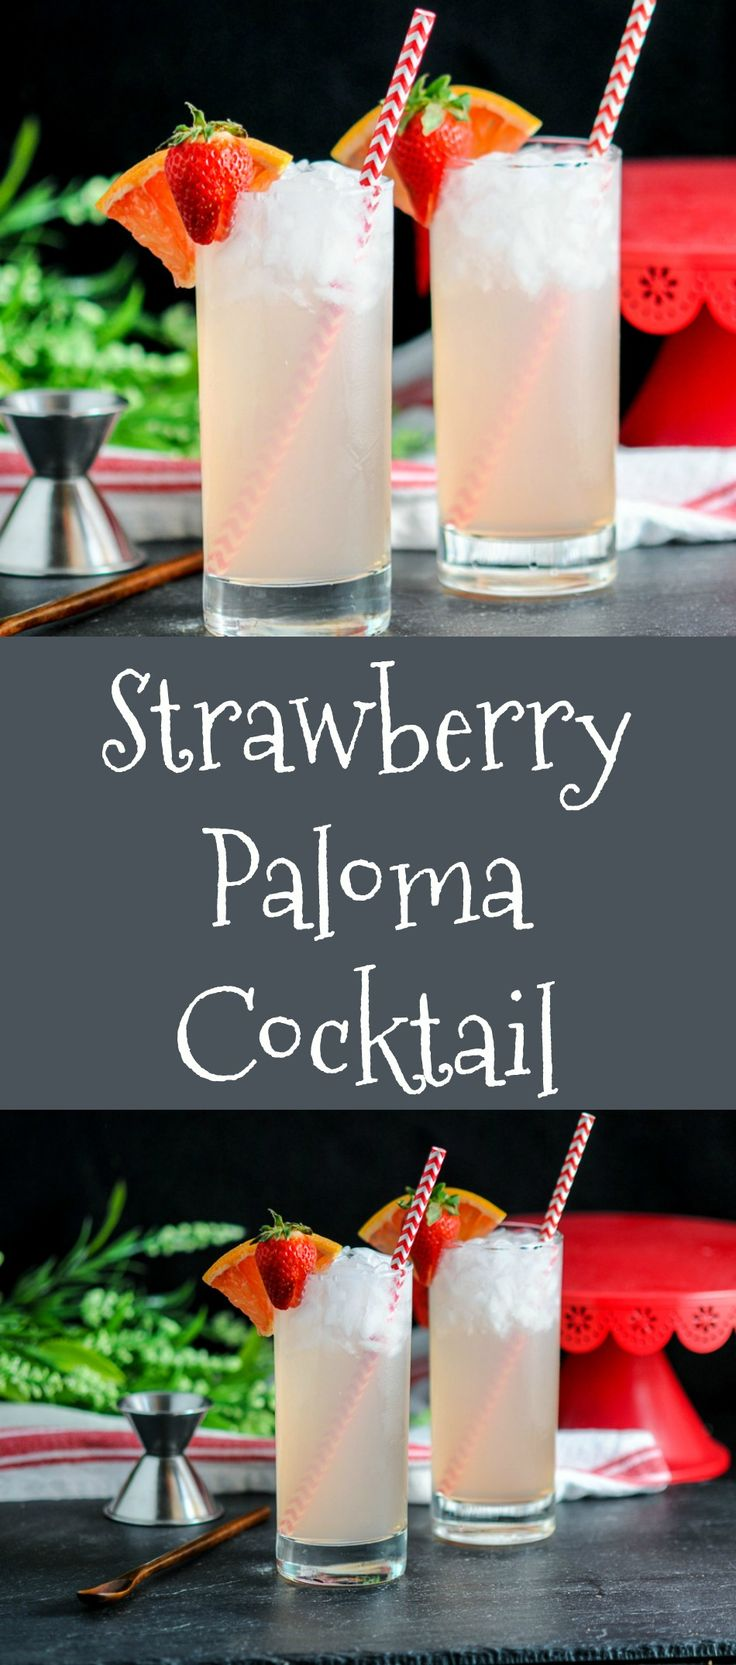 Strawberry Paloma Cocktail  tequila, grapefruit, strawberries, cocktail, recipe, easy, lime, mexico,summer, simple syrup, Happy Hour, twists